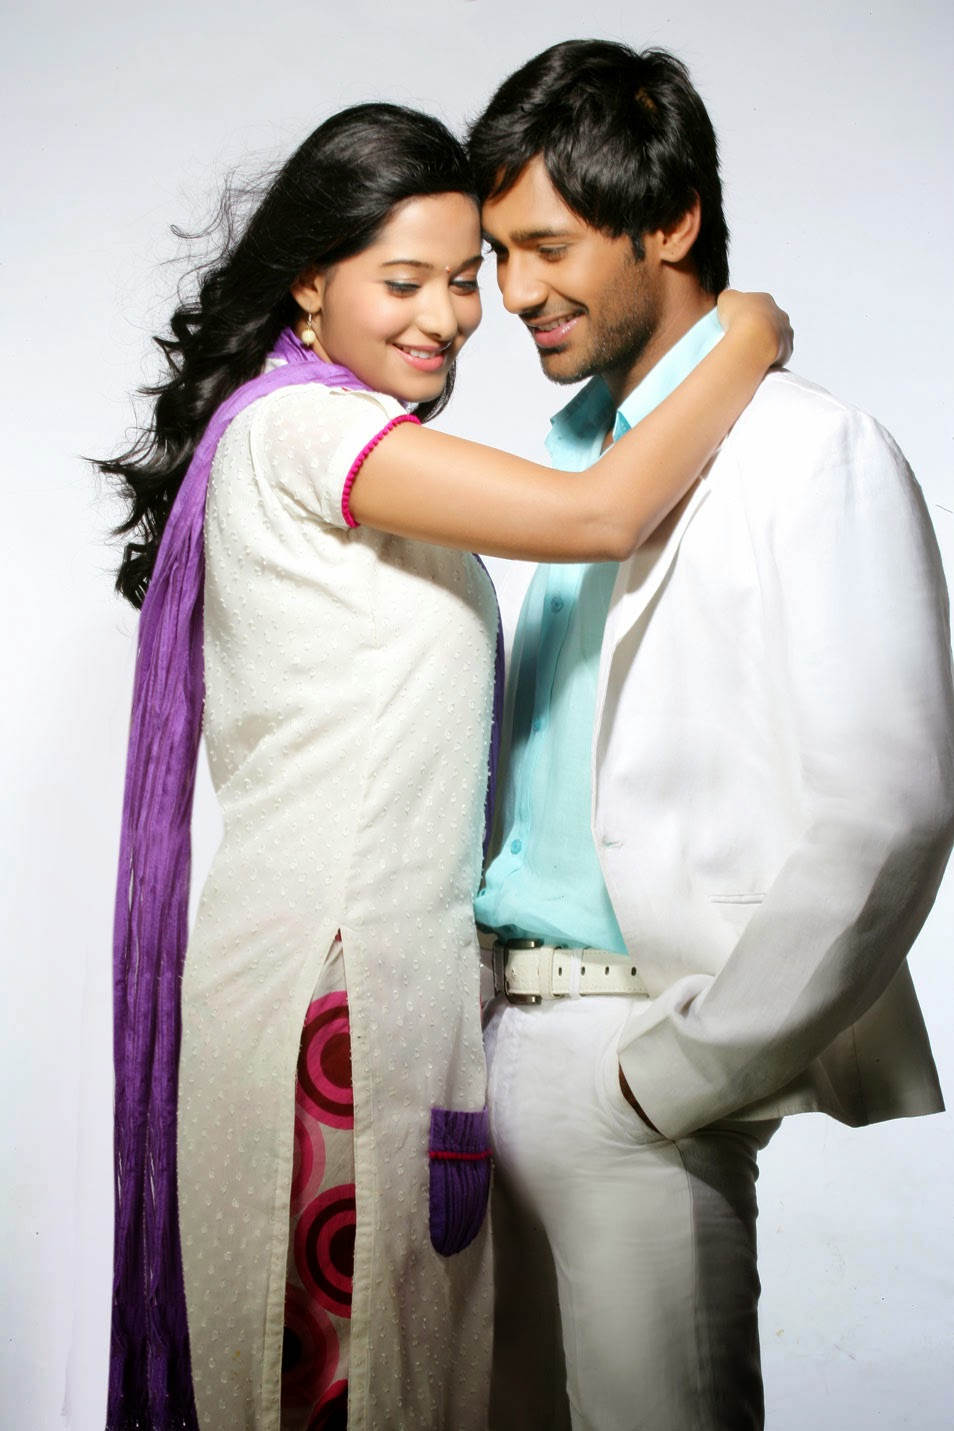 V, Varun Sandesh, Varun Sandesh HD Images, HD Images, latest HD images, Latest wallpapers, Telugu Movie actors, Tollywood, Indian Actors, Priyudu Telugu Movie Latest Photo Stills,Varun Sandesh Preetika Rao,Swetha basu prasad priyudu movie new stills,Priyudu movie stills,Telugu movie Priyudu photos,Priyudu new stills,Varun Sandesh Preetika Rao Latest Romantic Photoshoots